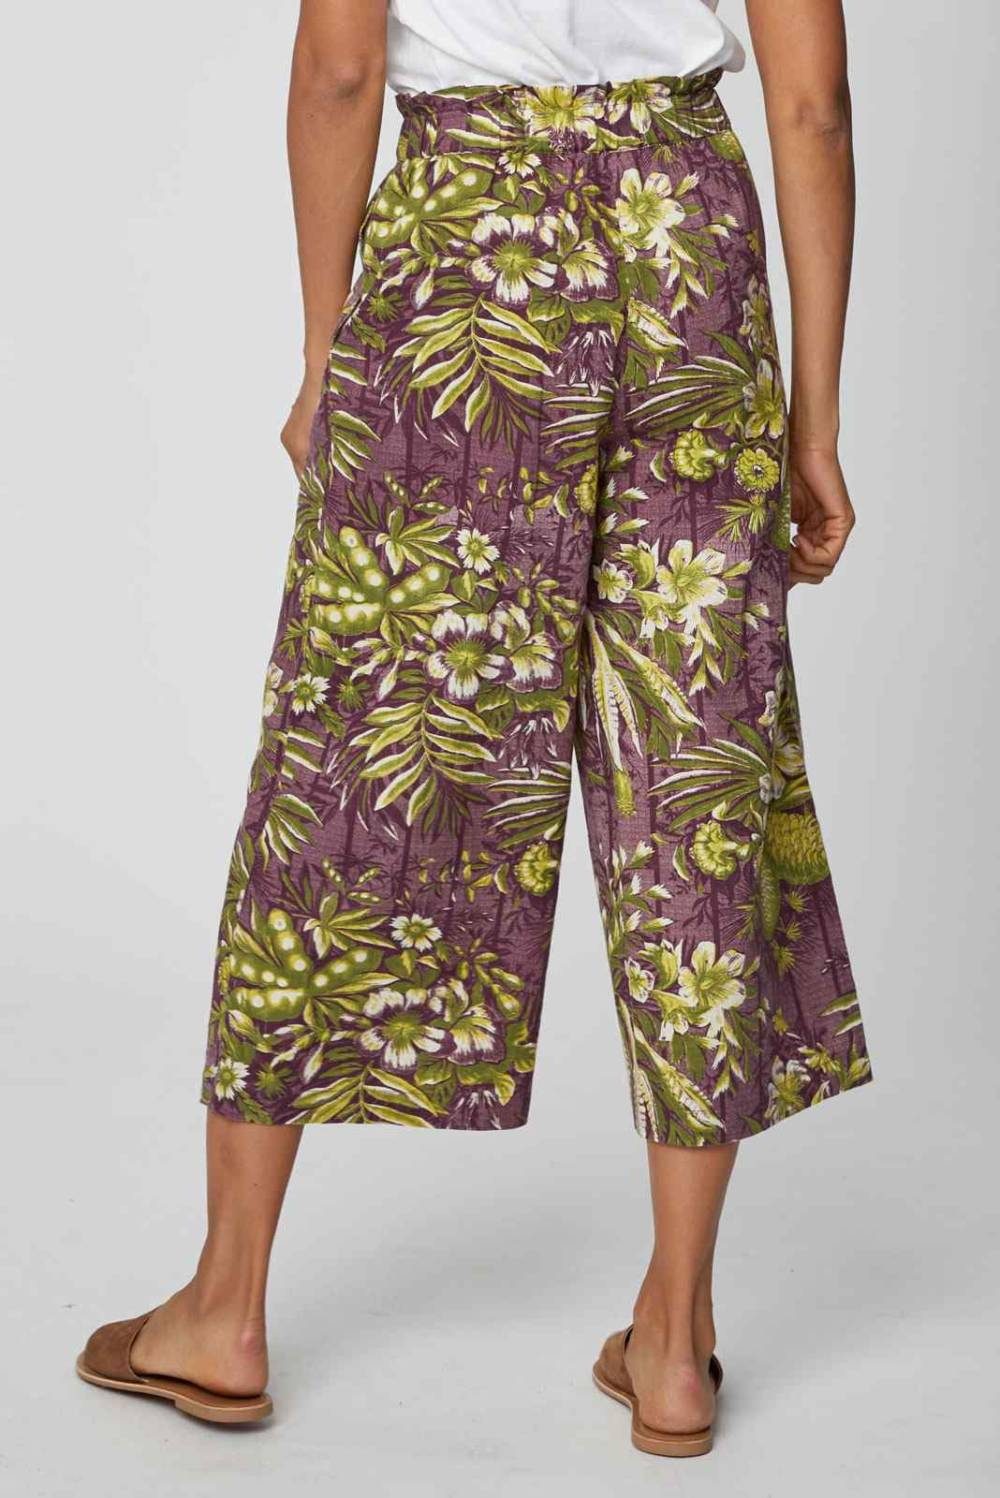 Tesari Culottes Thought Clothing Katie Kerr Women's Clothing